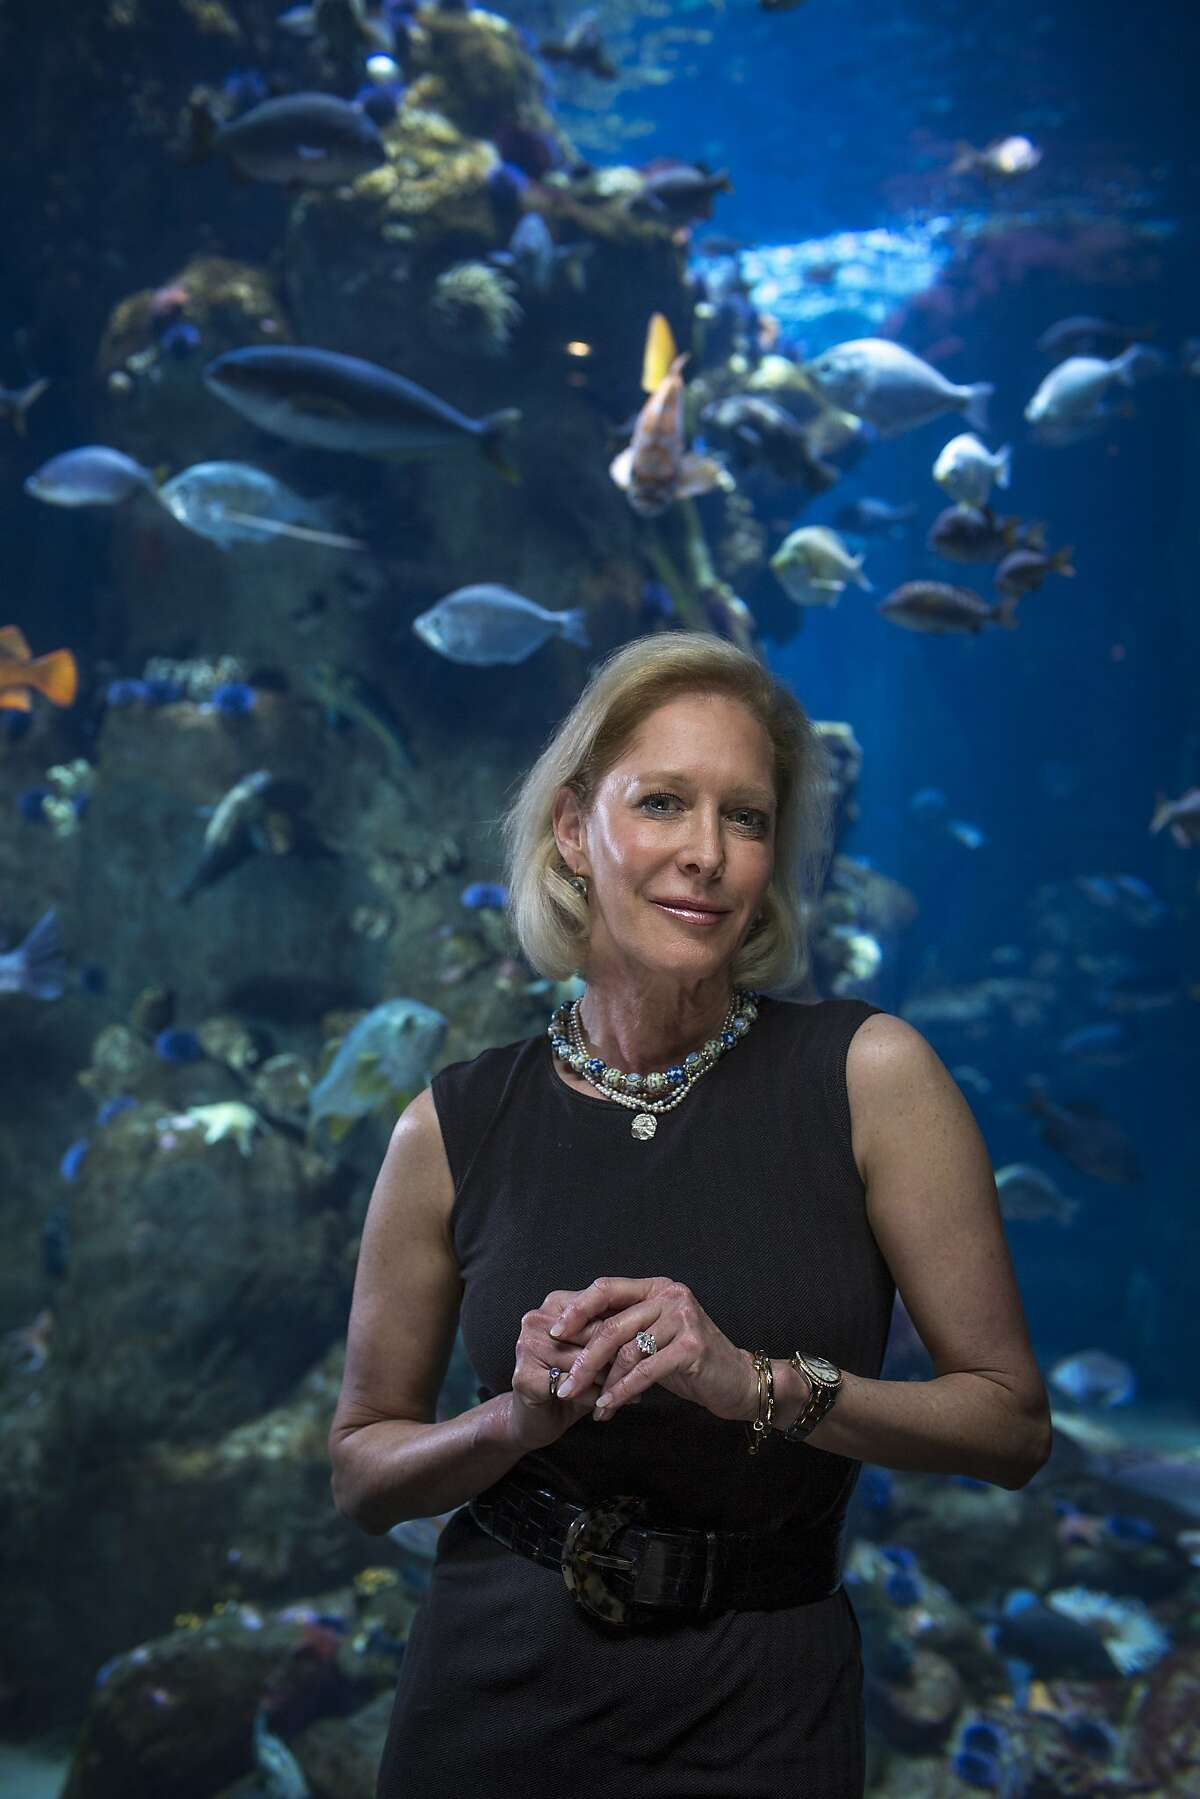 Wendy Schmidt, president of the Schmidt Family Foundation and co-founder of the Schmidt Ocean Institute, is seen at the California Academy of Sciences on Tuesday, Feb. 18, 2014 in San Francisco, Calif.